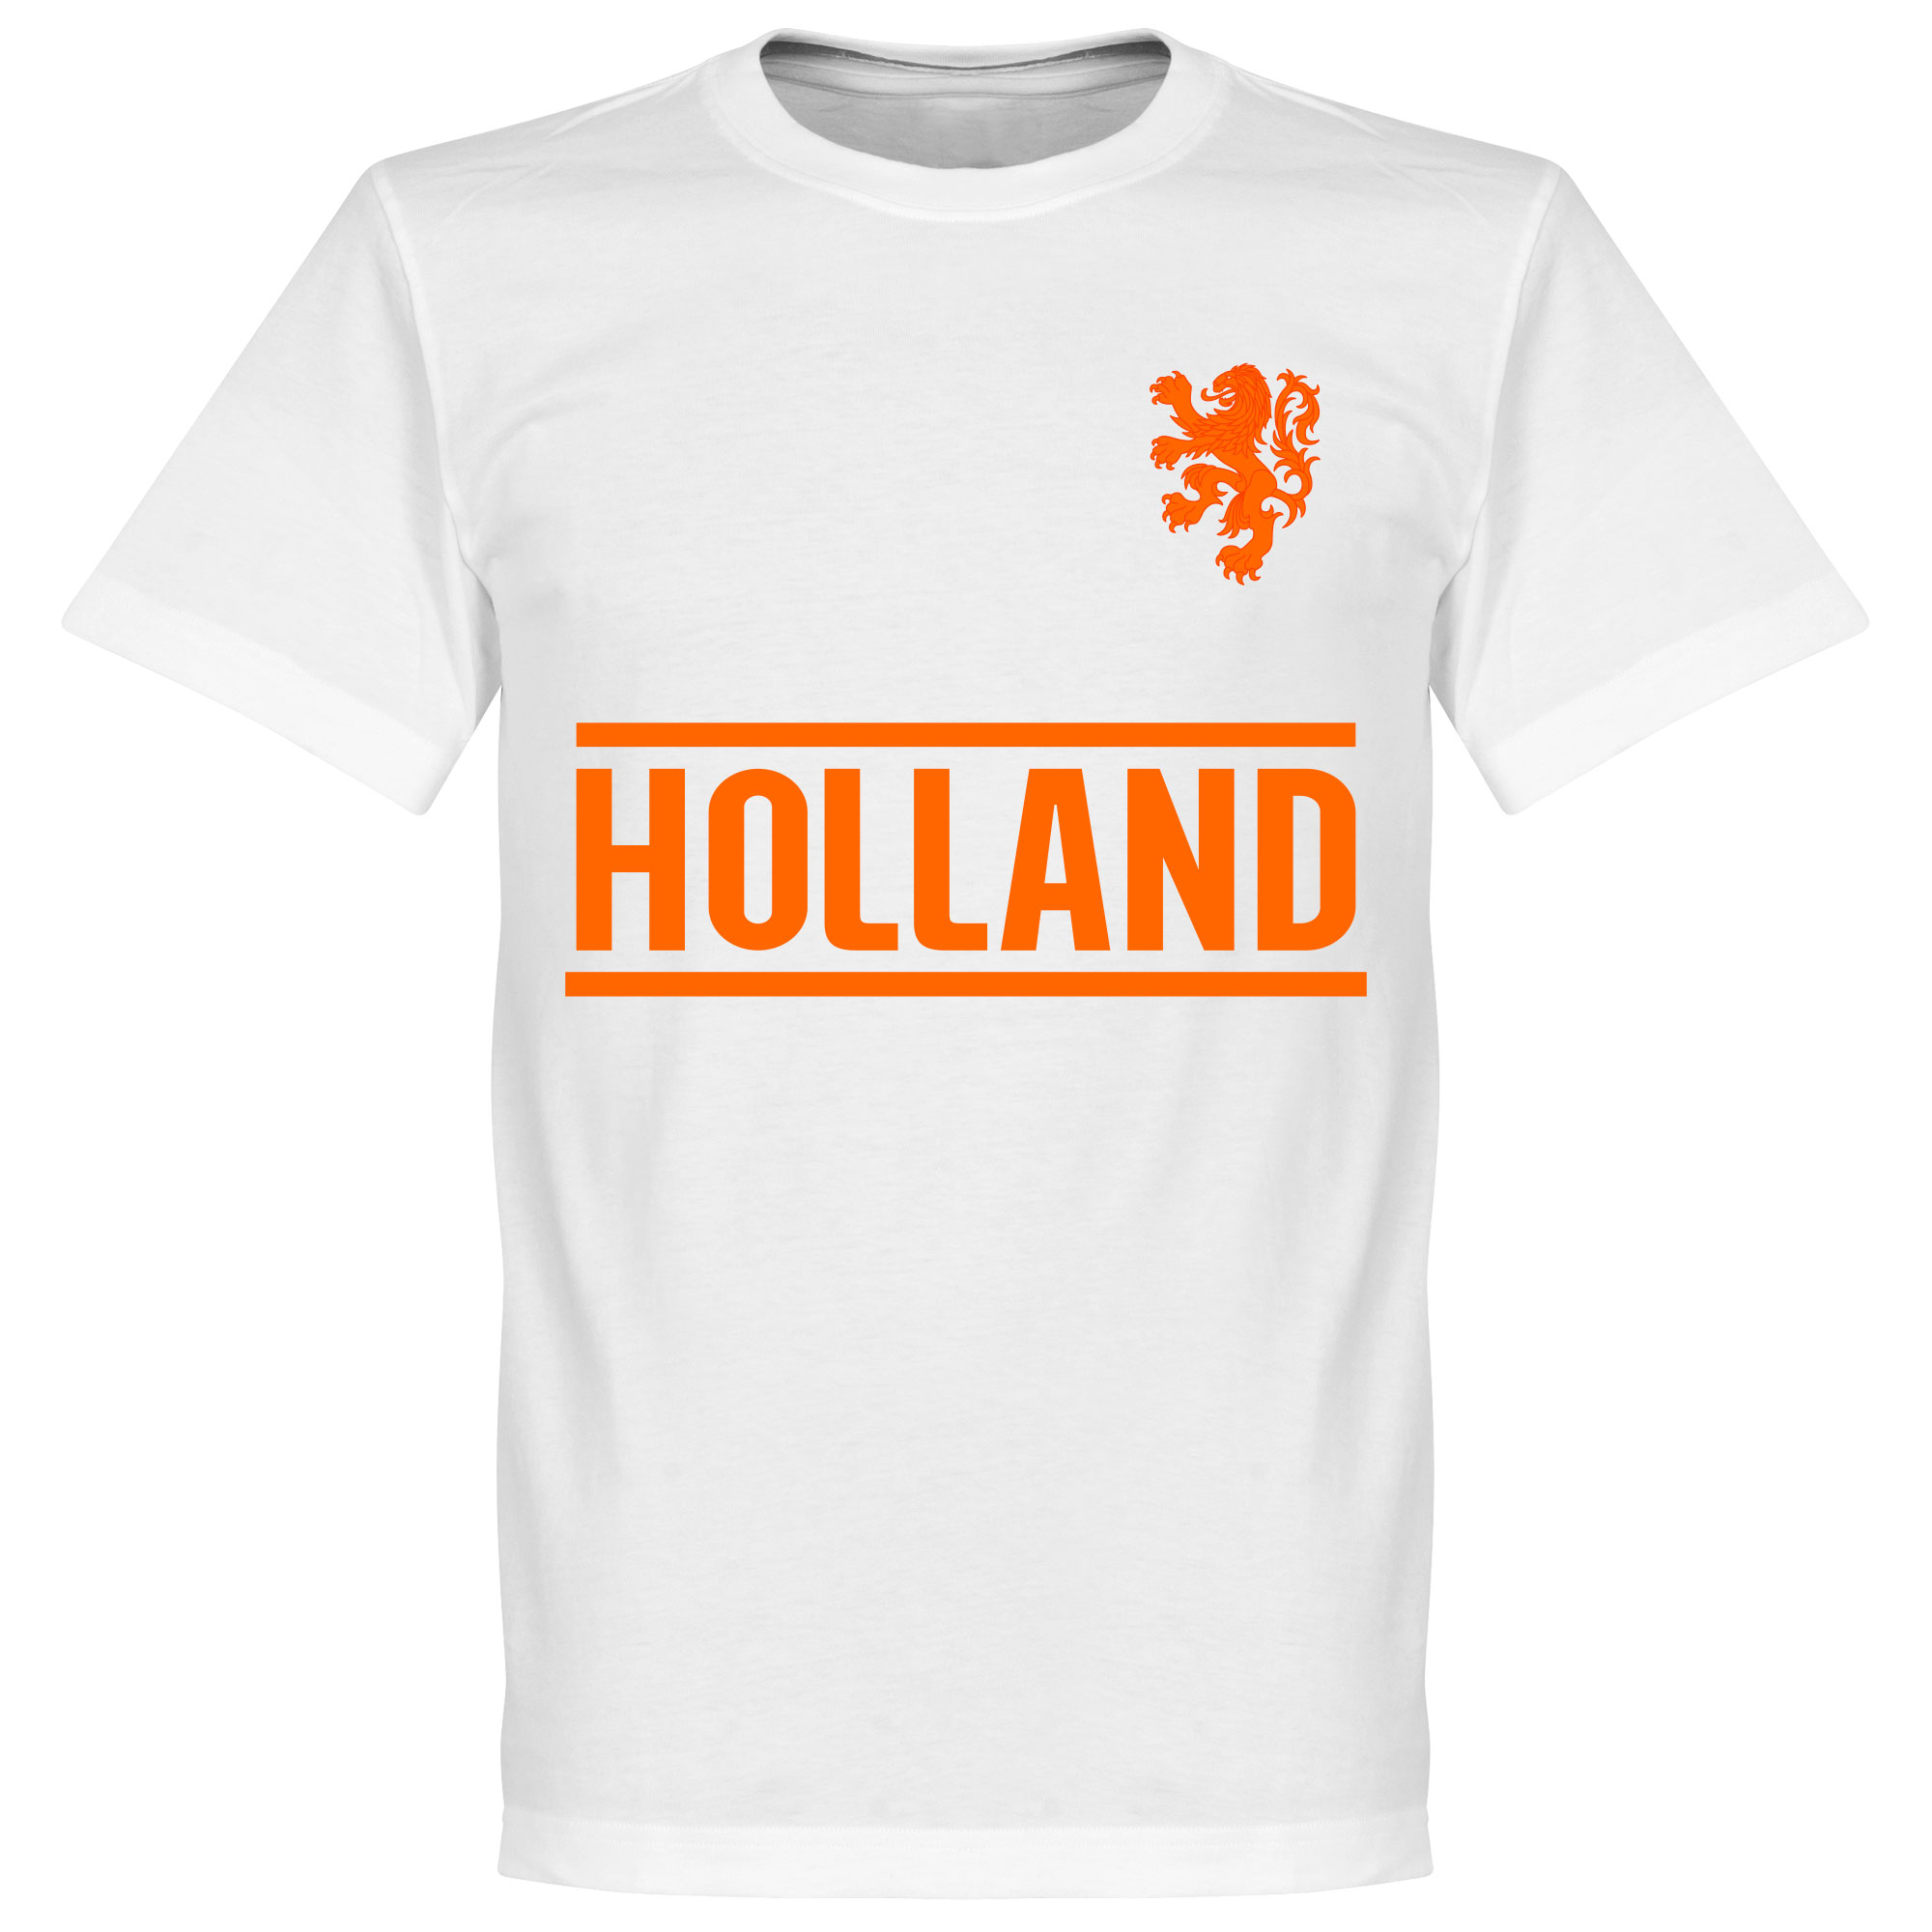 Holland Team Tee - White - XS